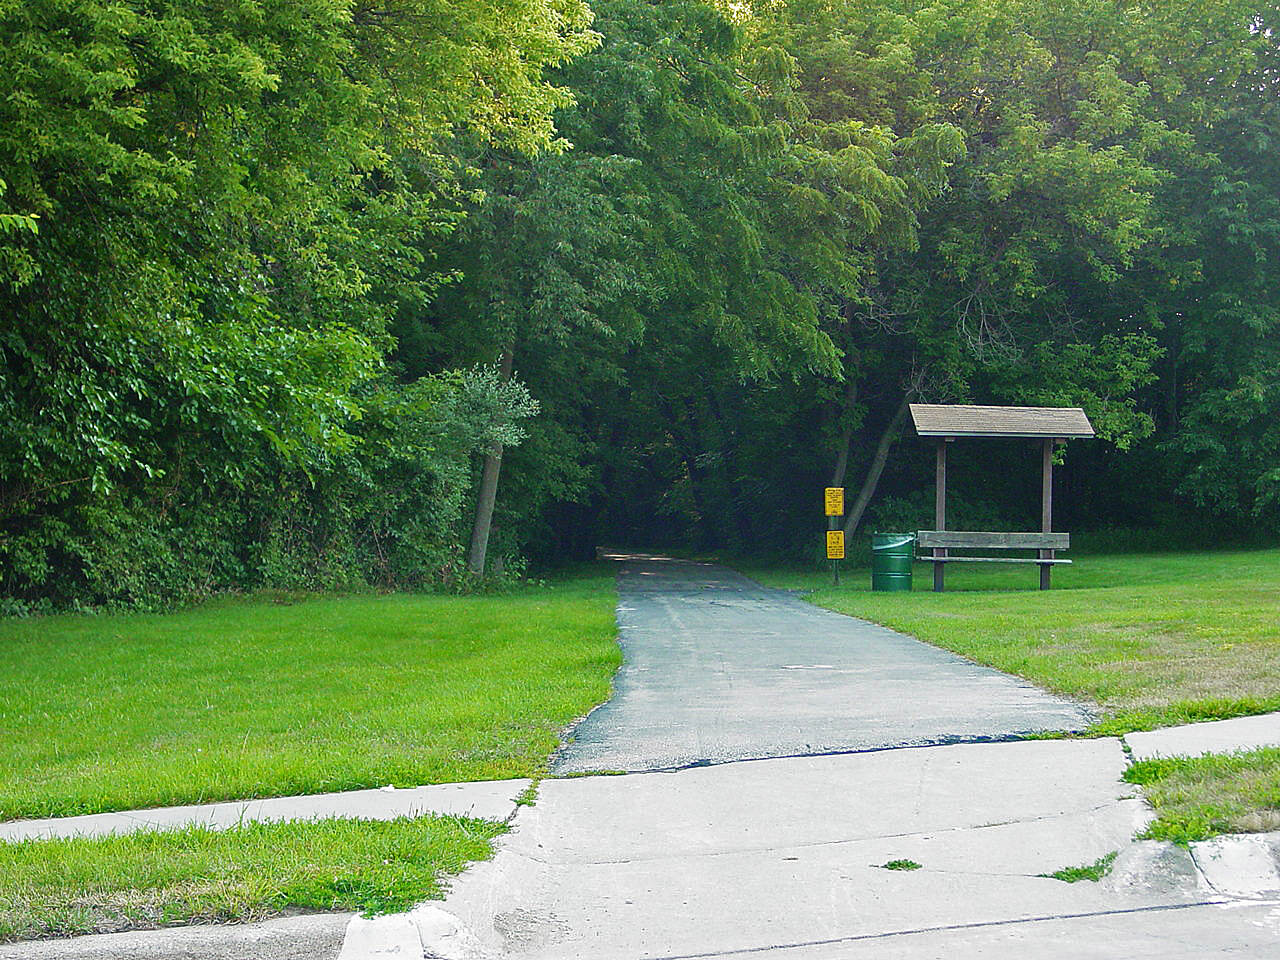 McVay Trail McVay Trail McVay Trail at the 9th Street crossing. Photo provided by Kathleen Kester, Indianola Parks & Recreation.